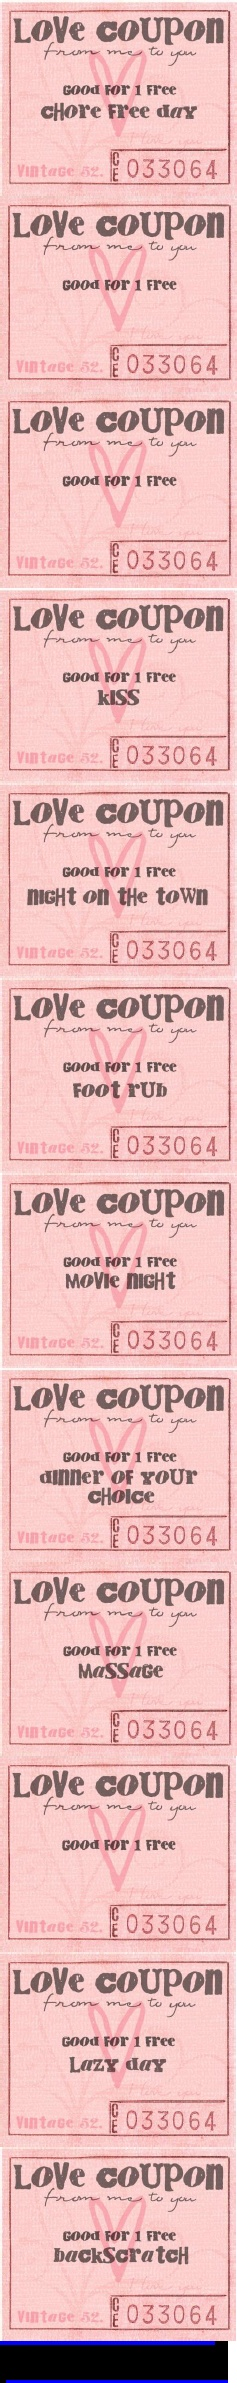 Best Love Coupons  Images On   Love Coupons Gift